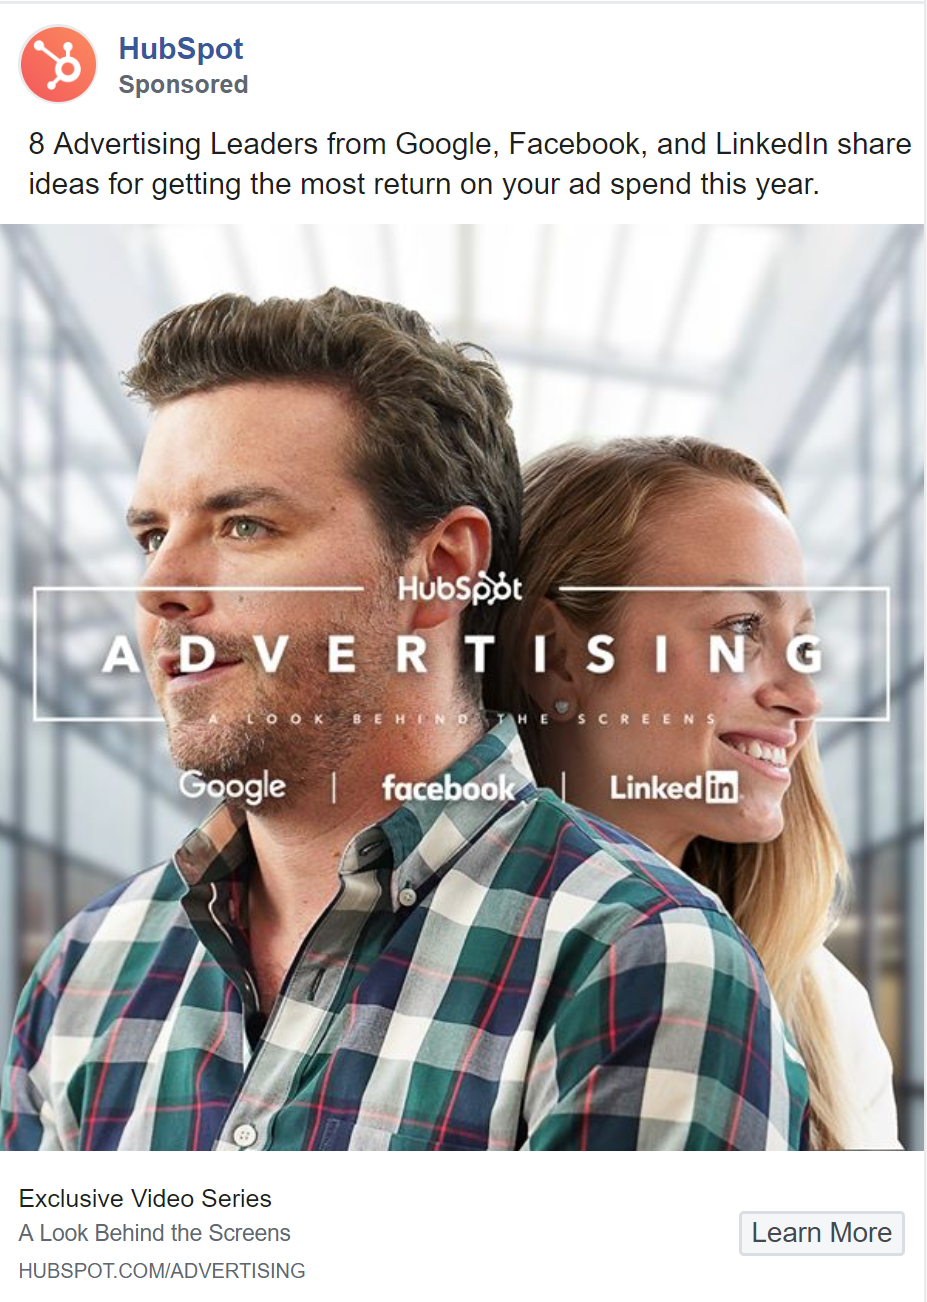 HubSpot uses a visually stunning ad on Facebooks to advertise testimonials.